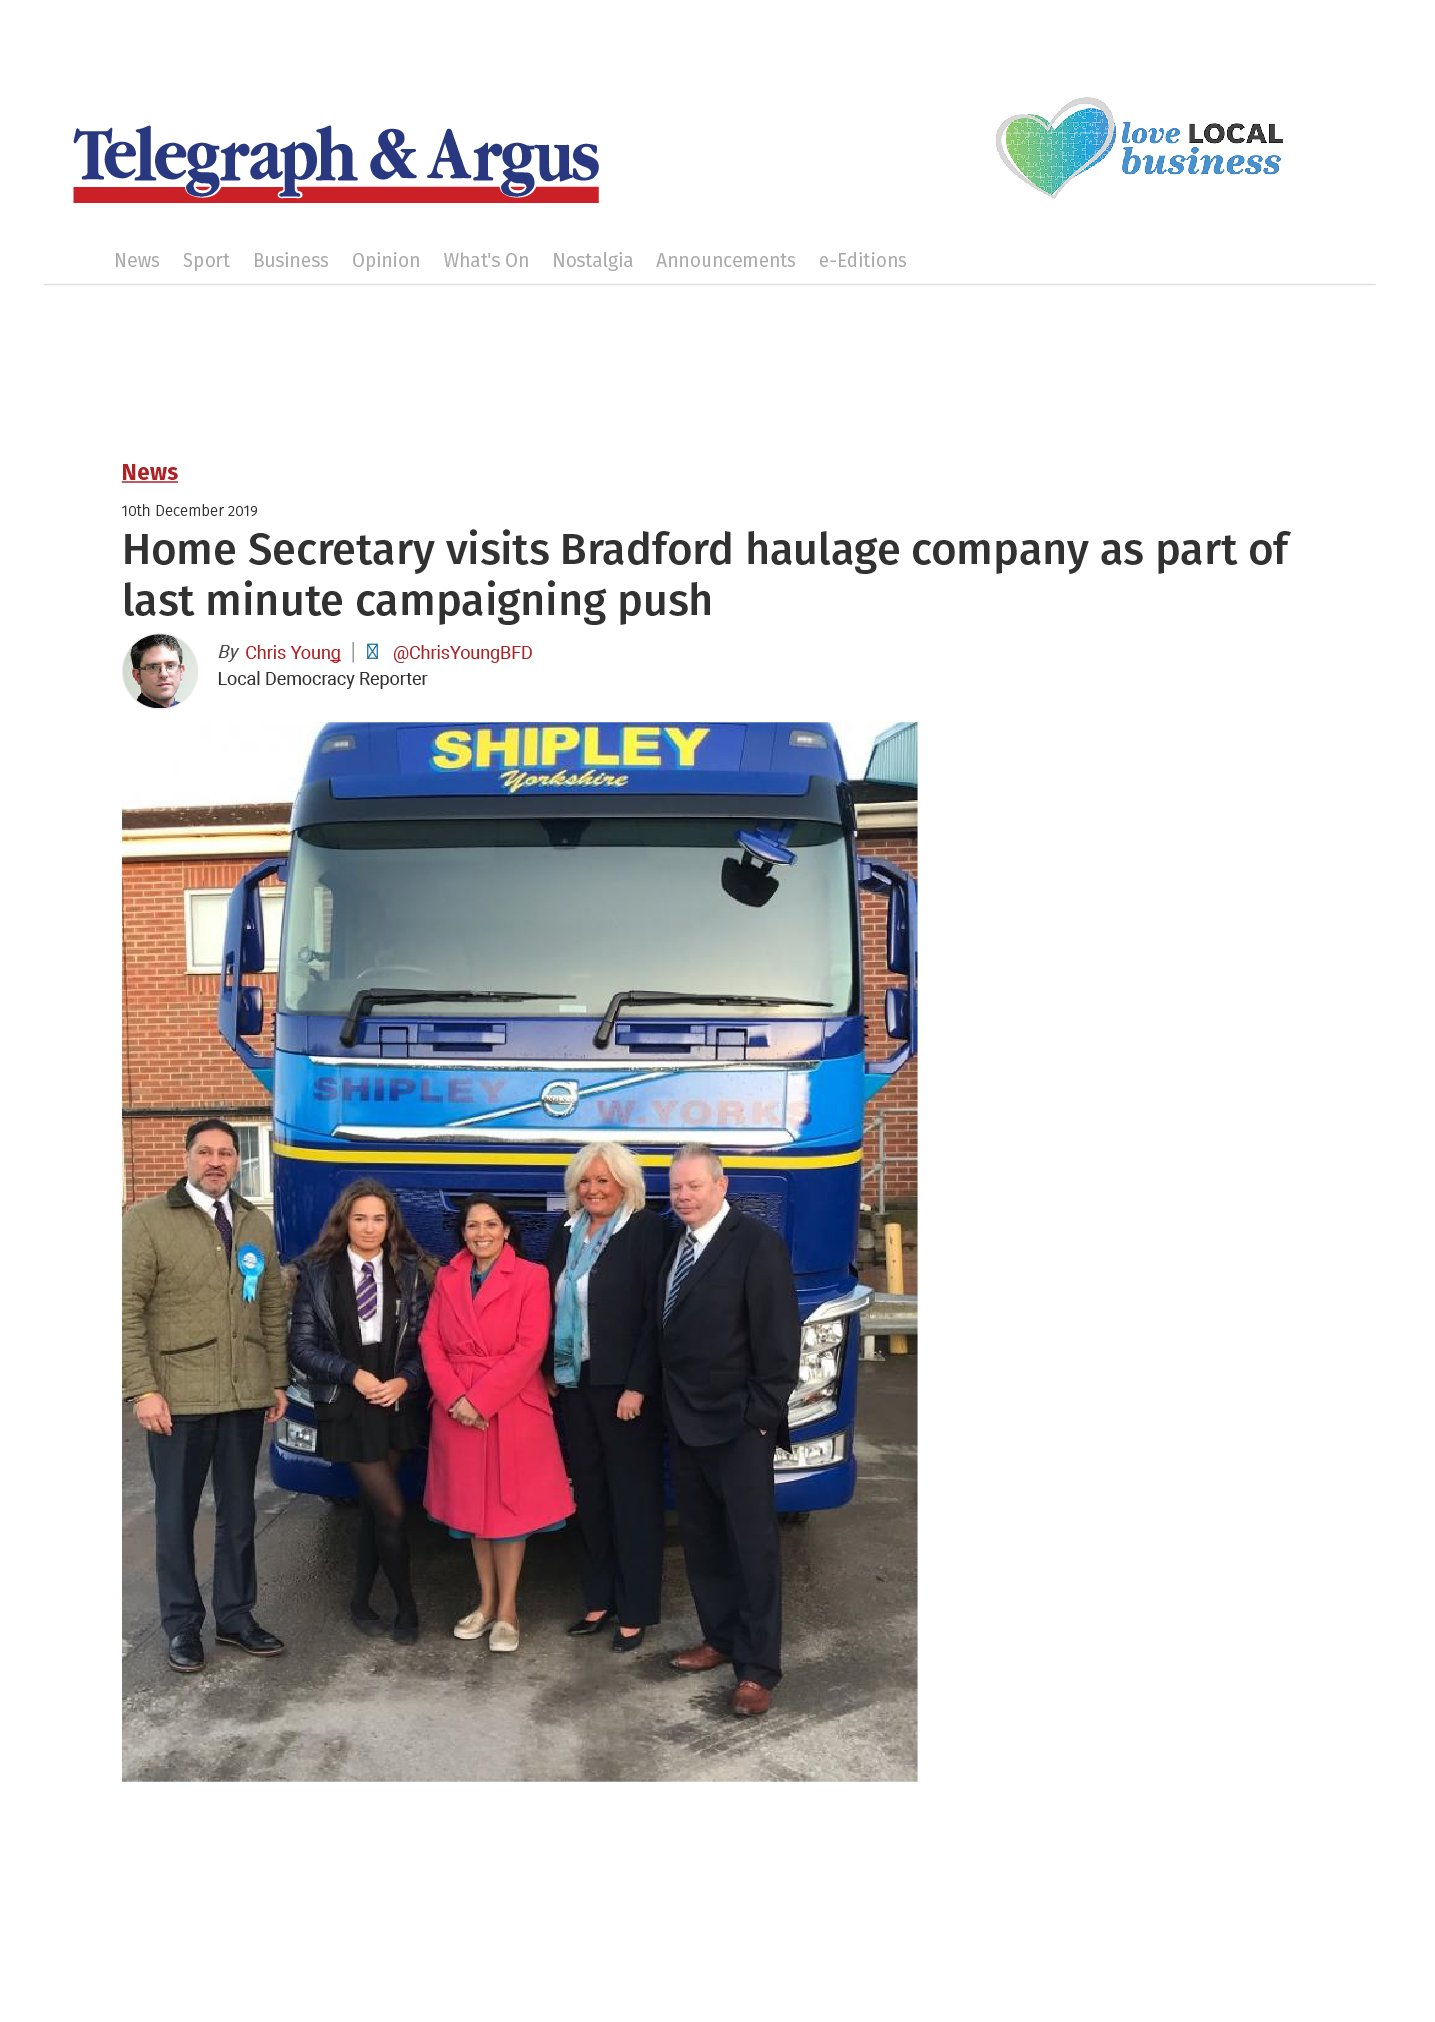 Home Secretary visits Bradford haulage company as part of last minute campaigning push